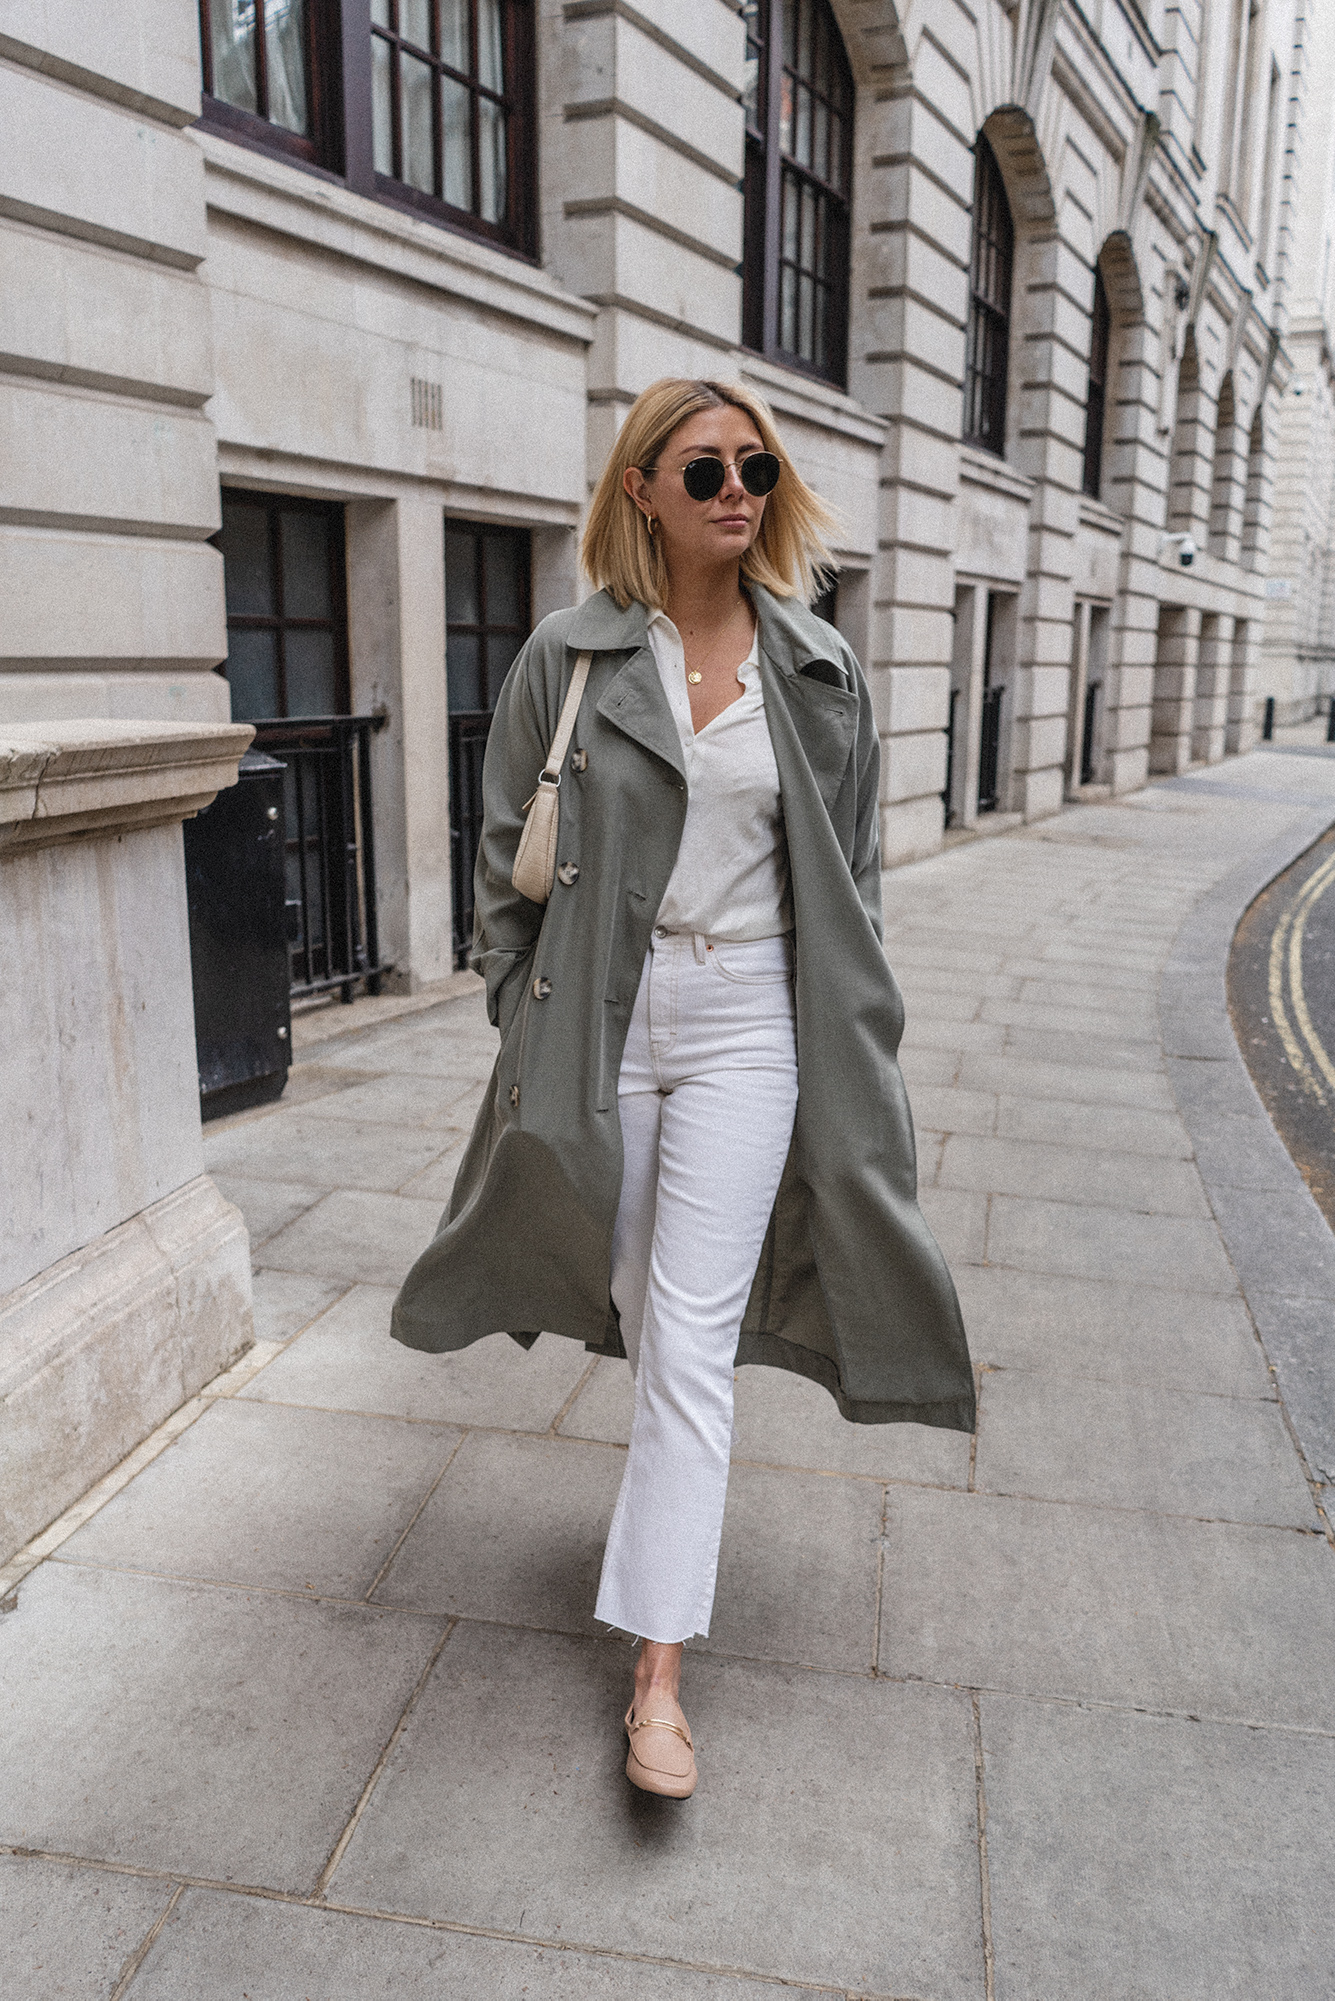 Emma Hill style, mint green trench coat, button up collared shirt, by FAR inspired mock croc cream bag, white jeans, gold necklace, nude loafers, Spring outfit ideas